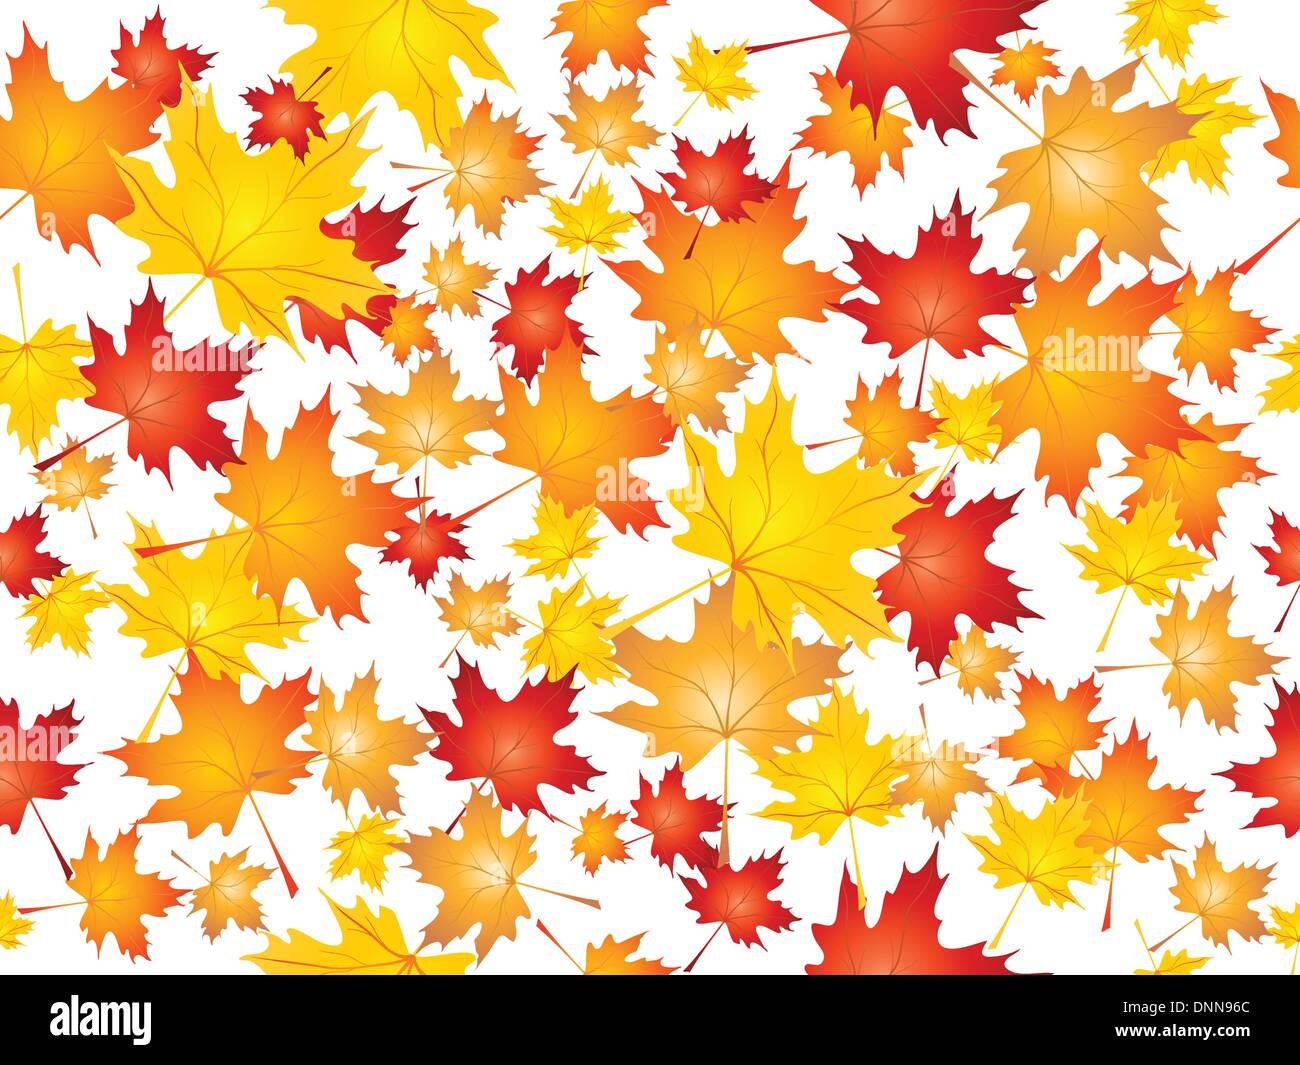 Background of falling Maple leaves - Stock Image